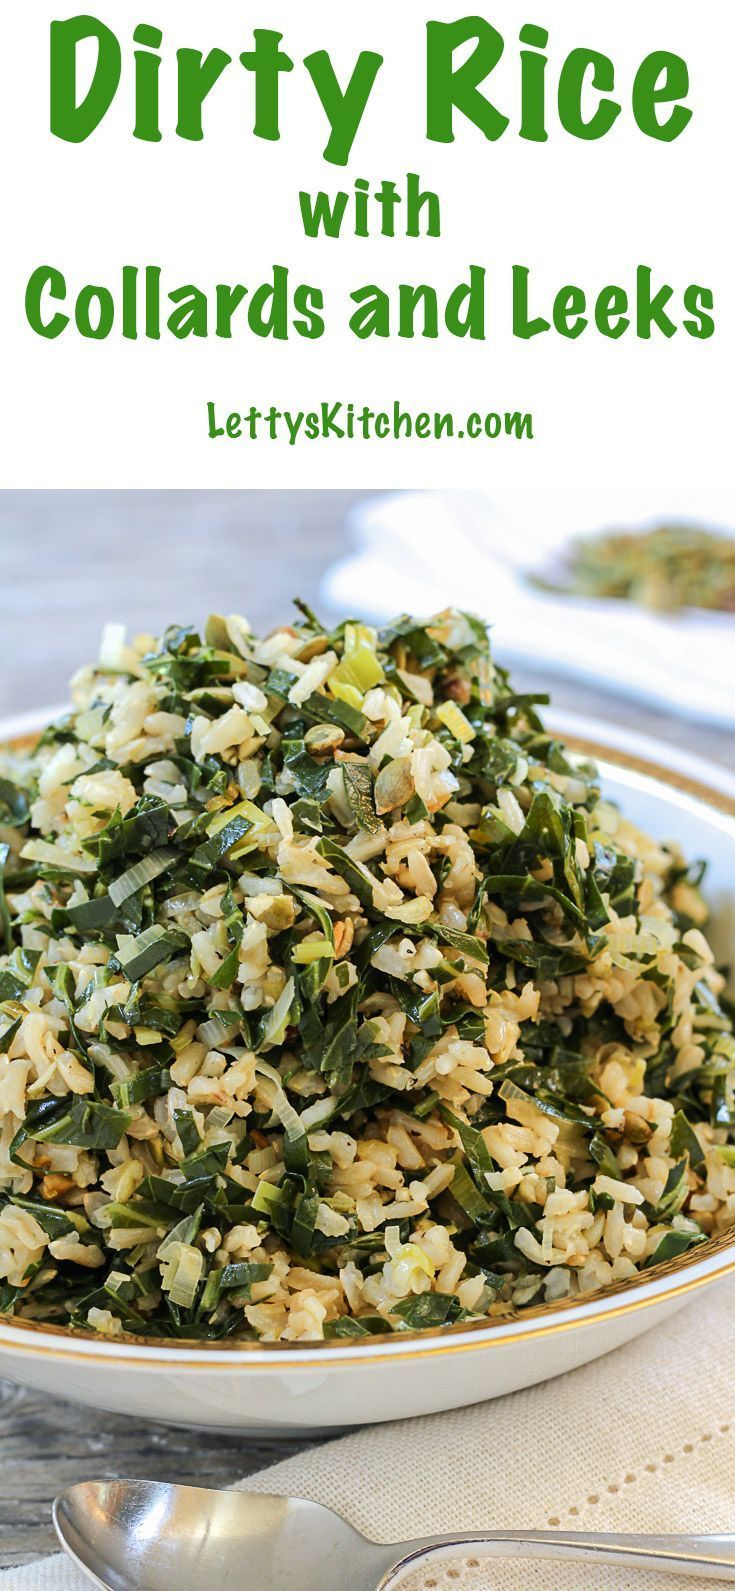 A perfect holiday side dish. Gluten-free and Vegan Dirty Rice with Collard Greens and Leeks. [from LettysKitchen.com]